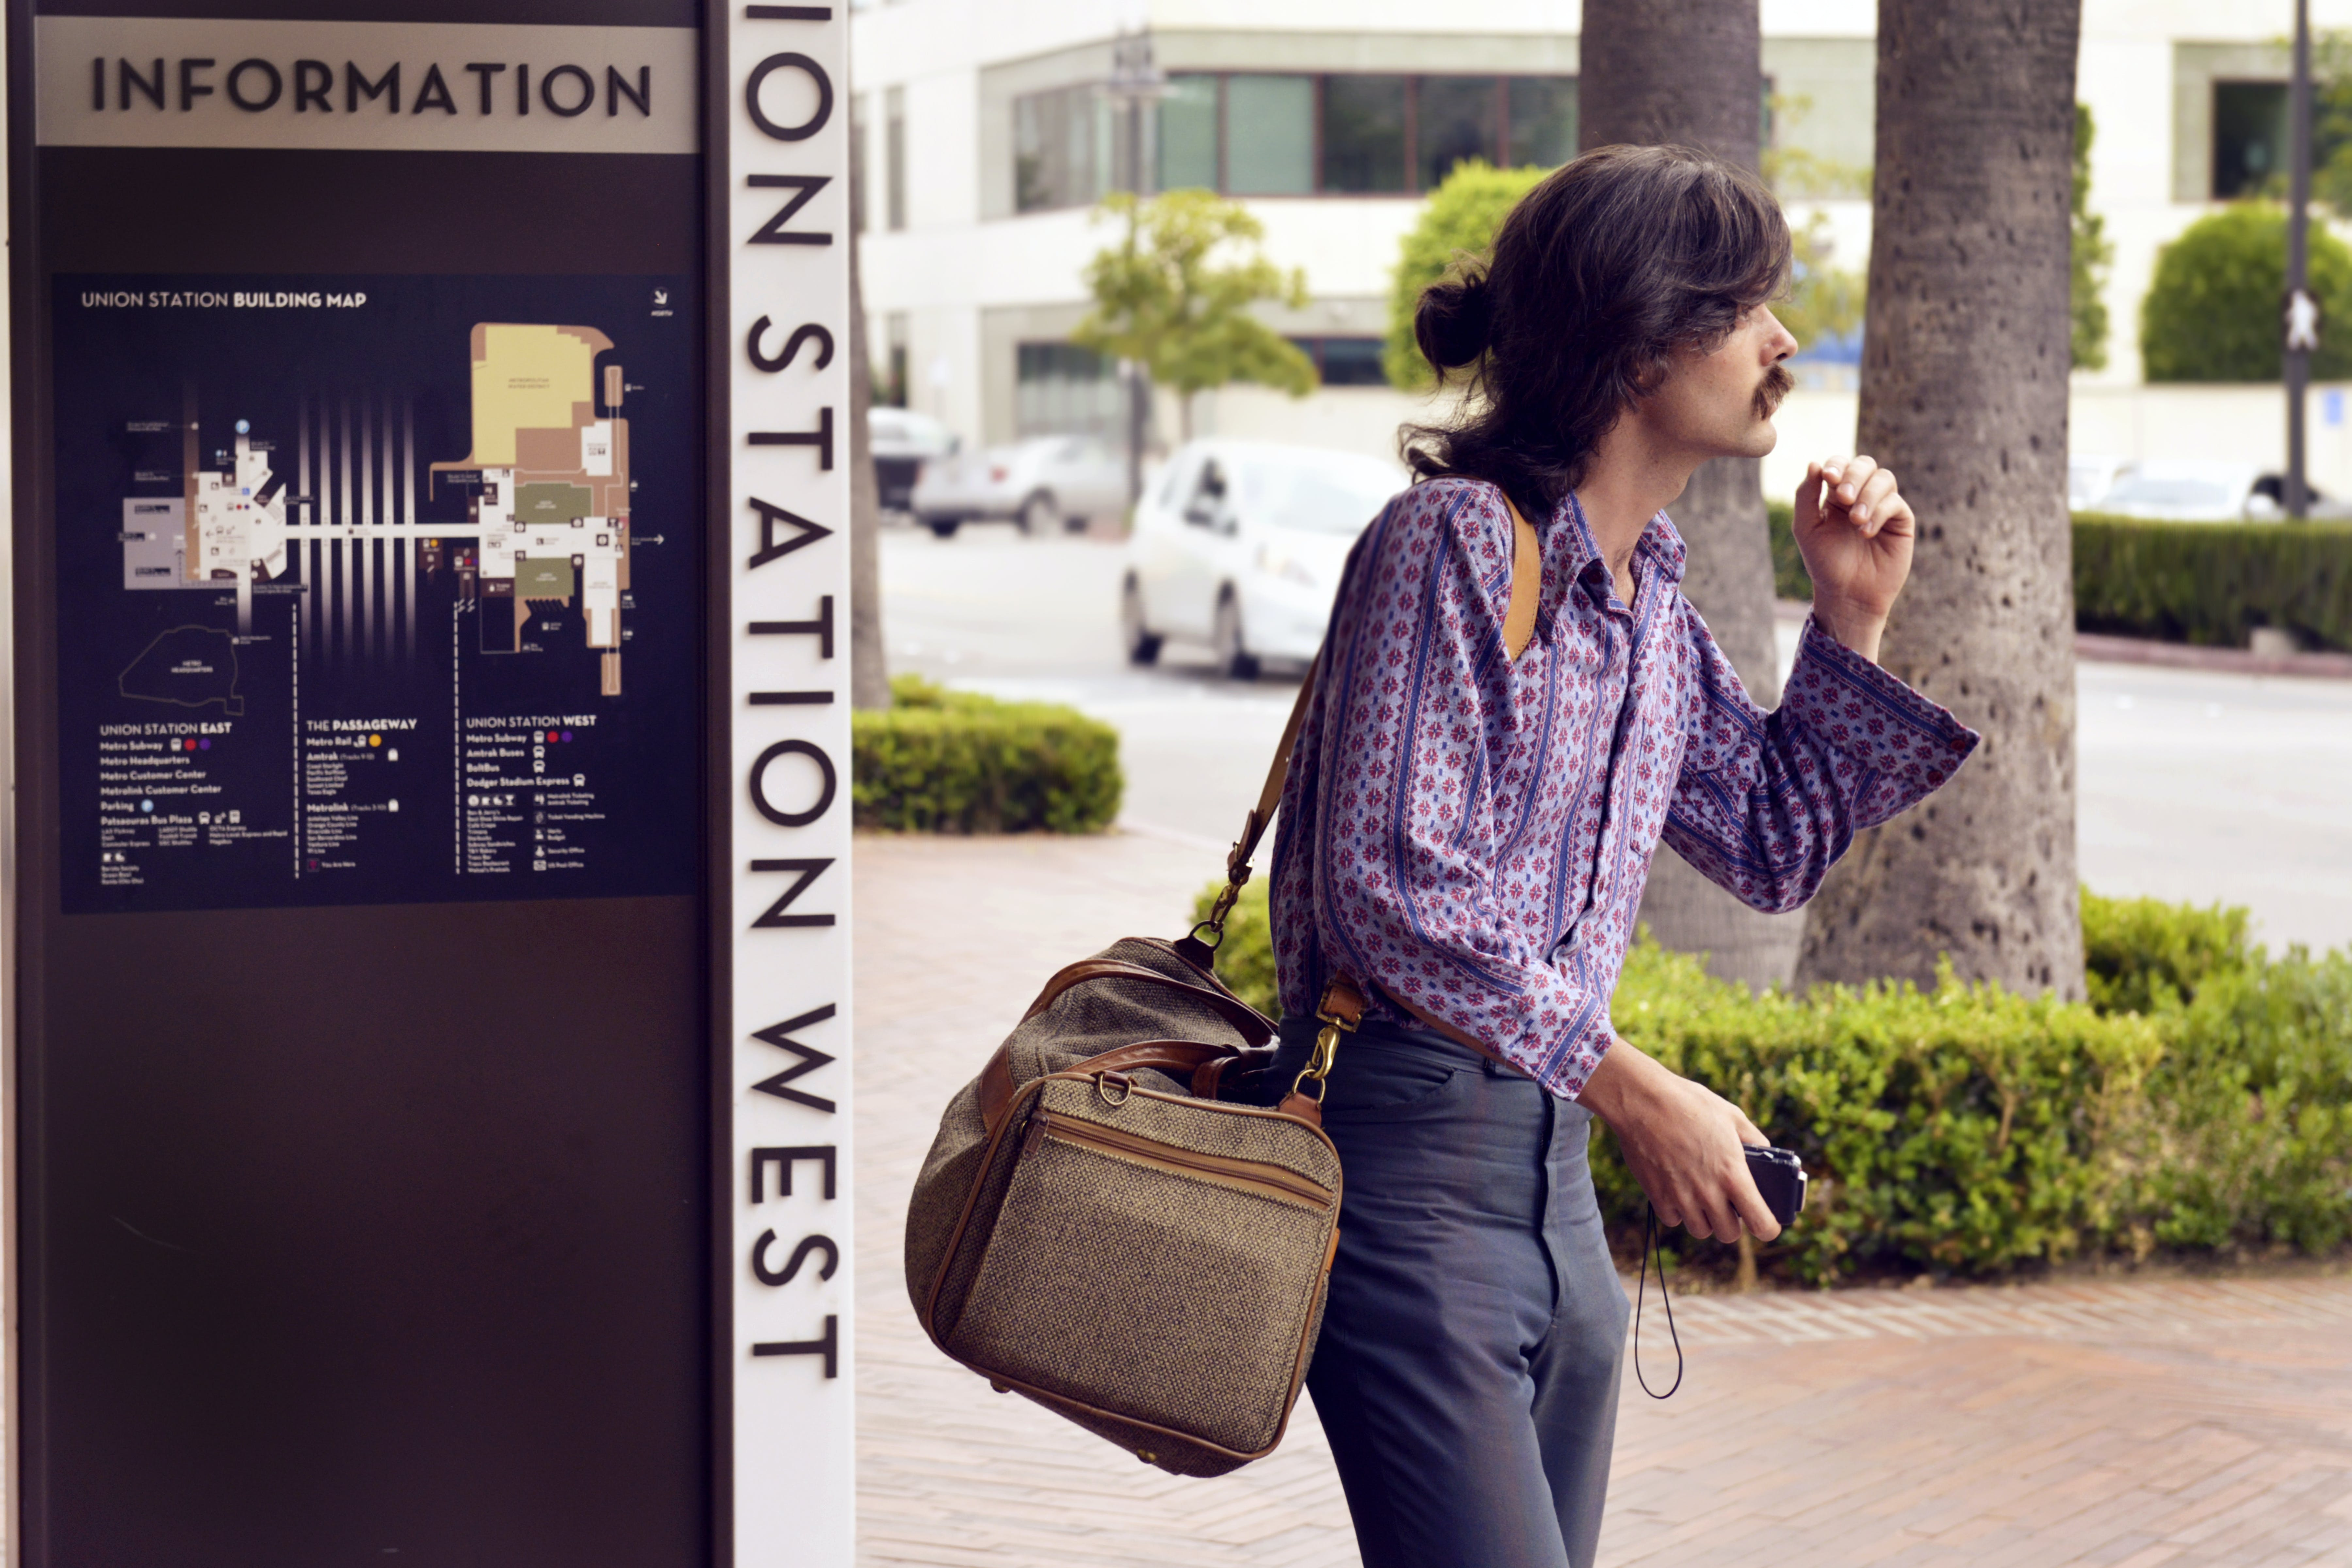 Person Wearing Purple Dress Shirt and Black Pants White Carrying Brown Sling Bag